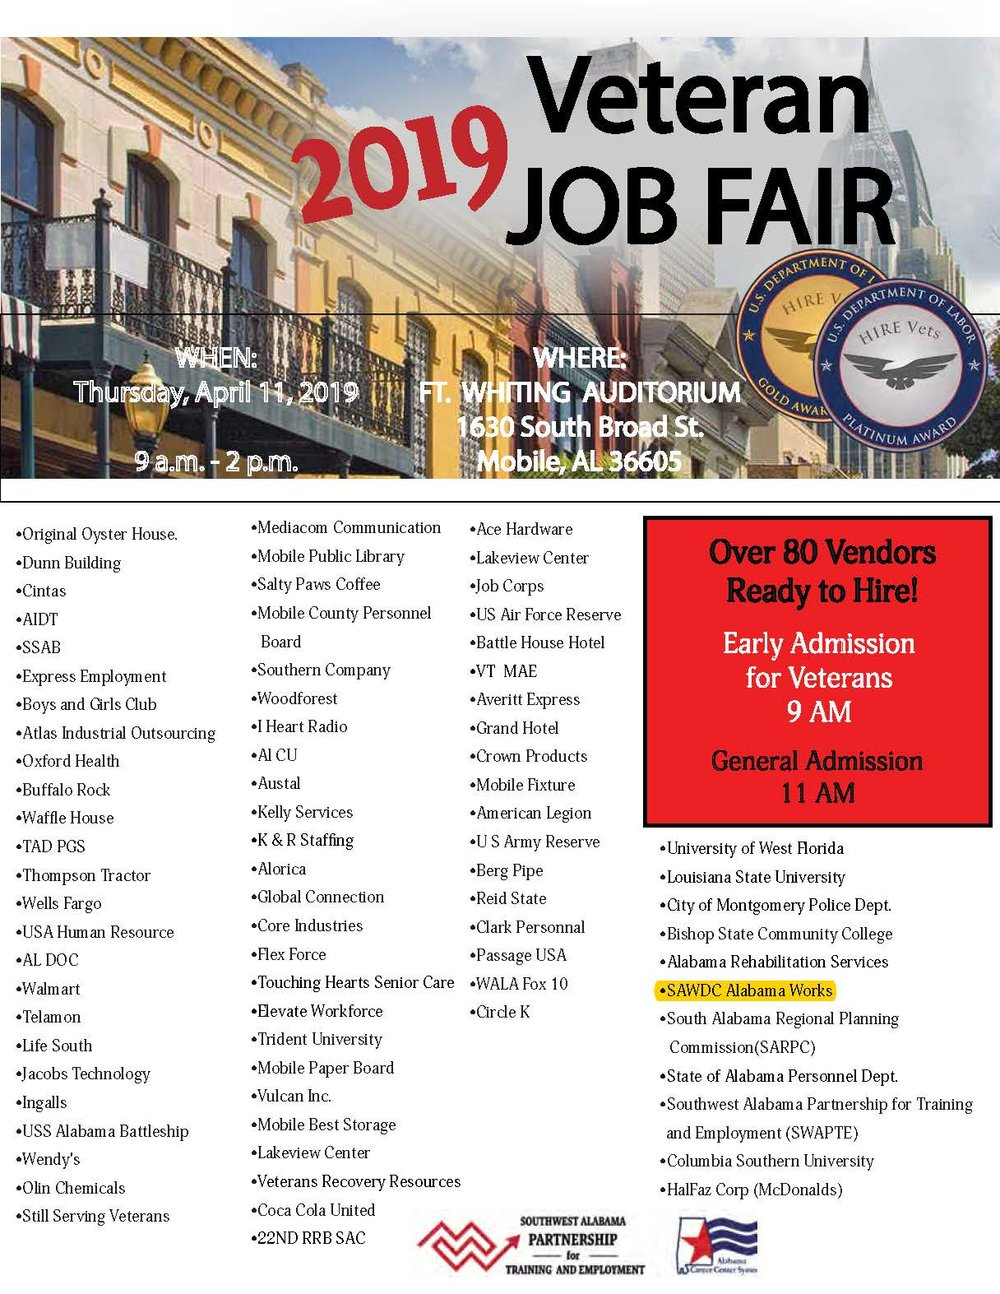 Veterans Job Fair 2019 Revised AA (1).jpg